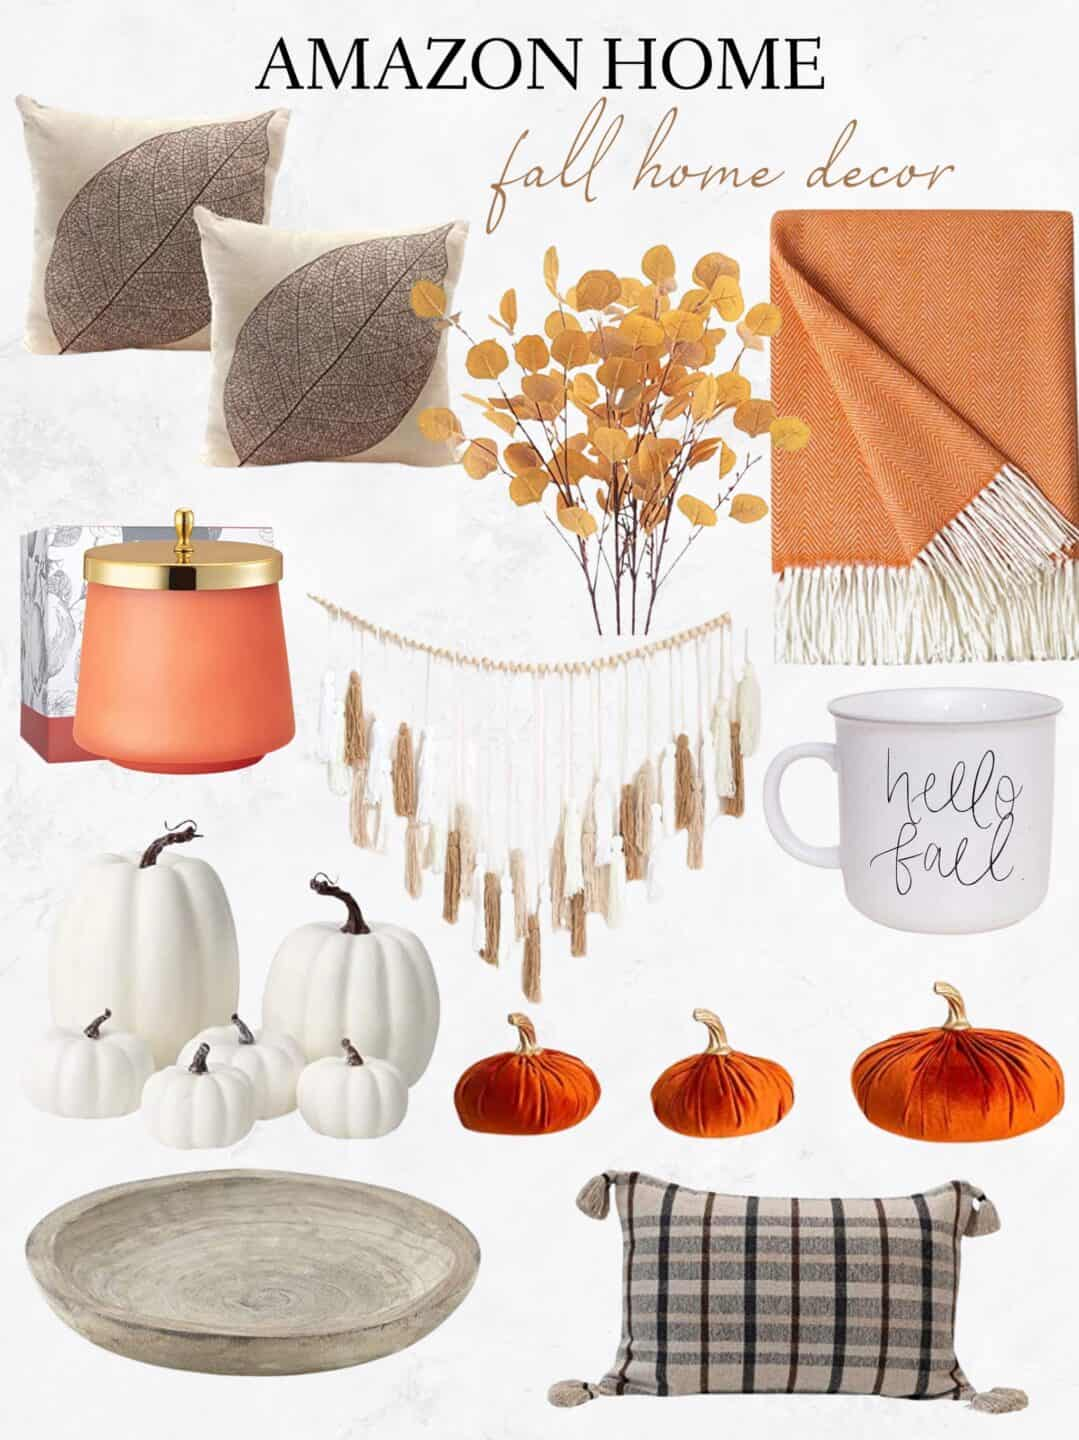 Amazon Home Decor Inspiration for the Fall